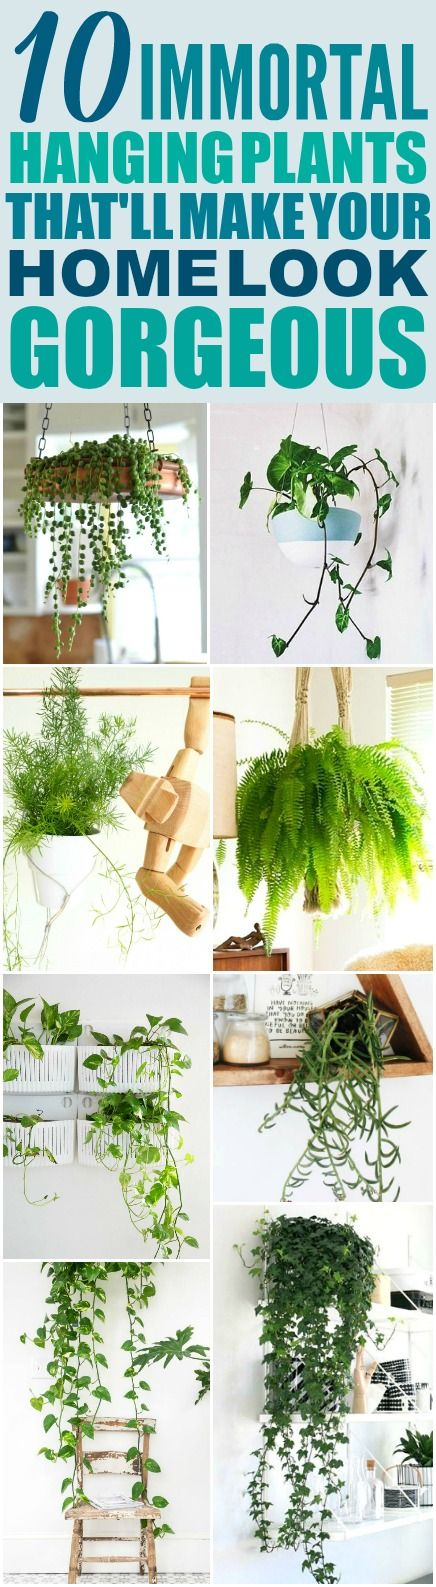 These 10 Low Maintenance Hanging Plants Are The Best I M So Hy Found Amazing Ideas Now Have A Great Way To Decorate My Home And Not Kill